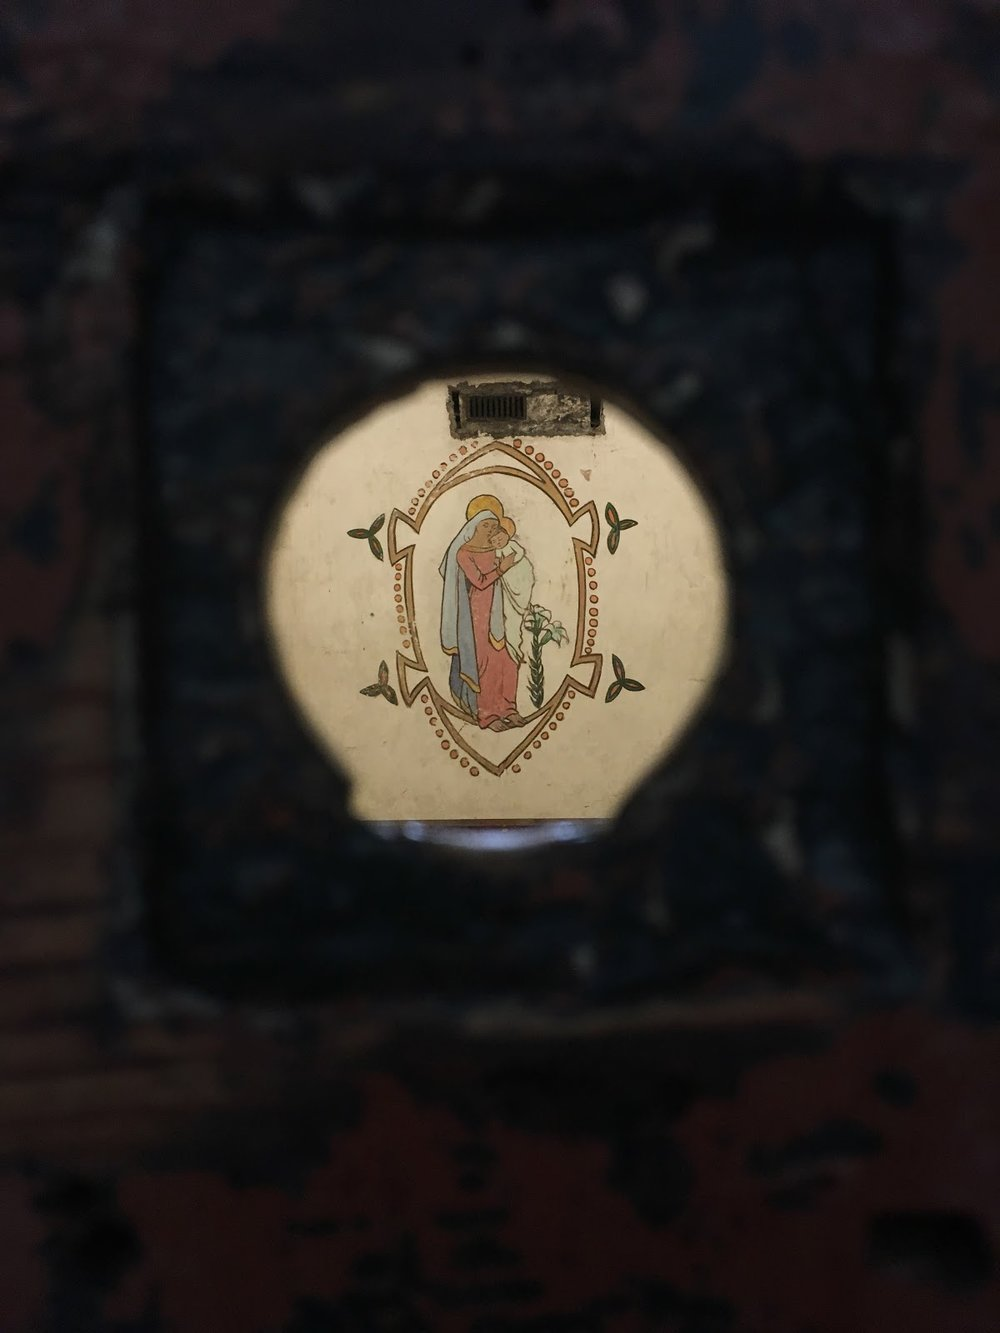 Looking inside the peep-hole of Grace Gifford's old cell, you can see a beautiful painting of the Madonna she created with smuggled paints. Grace Gifford married her fiancé Joseph Plunkett only hours before his execution for his part in the 1916 Easter Rising.